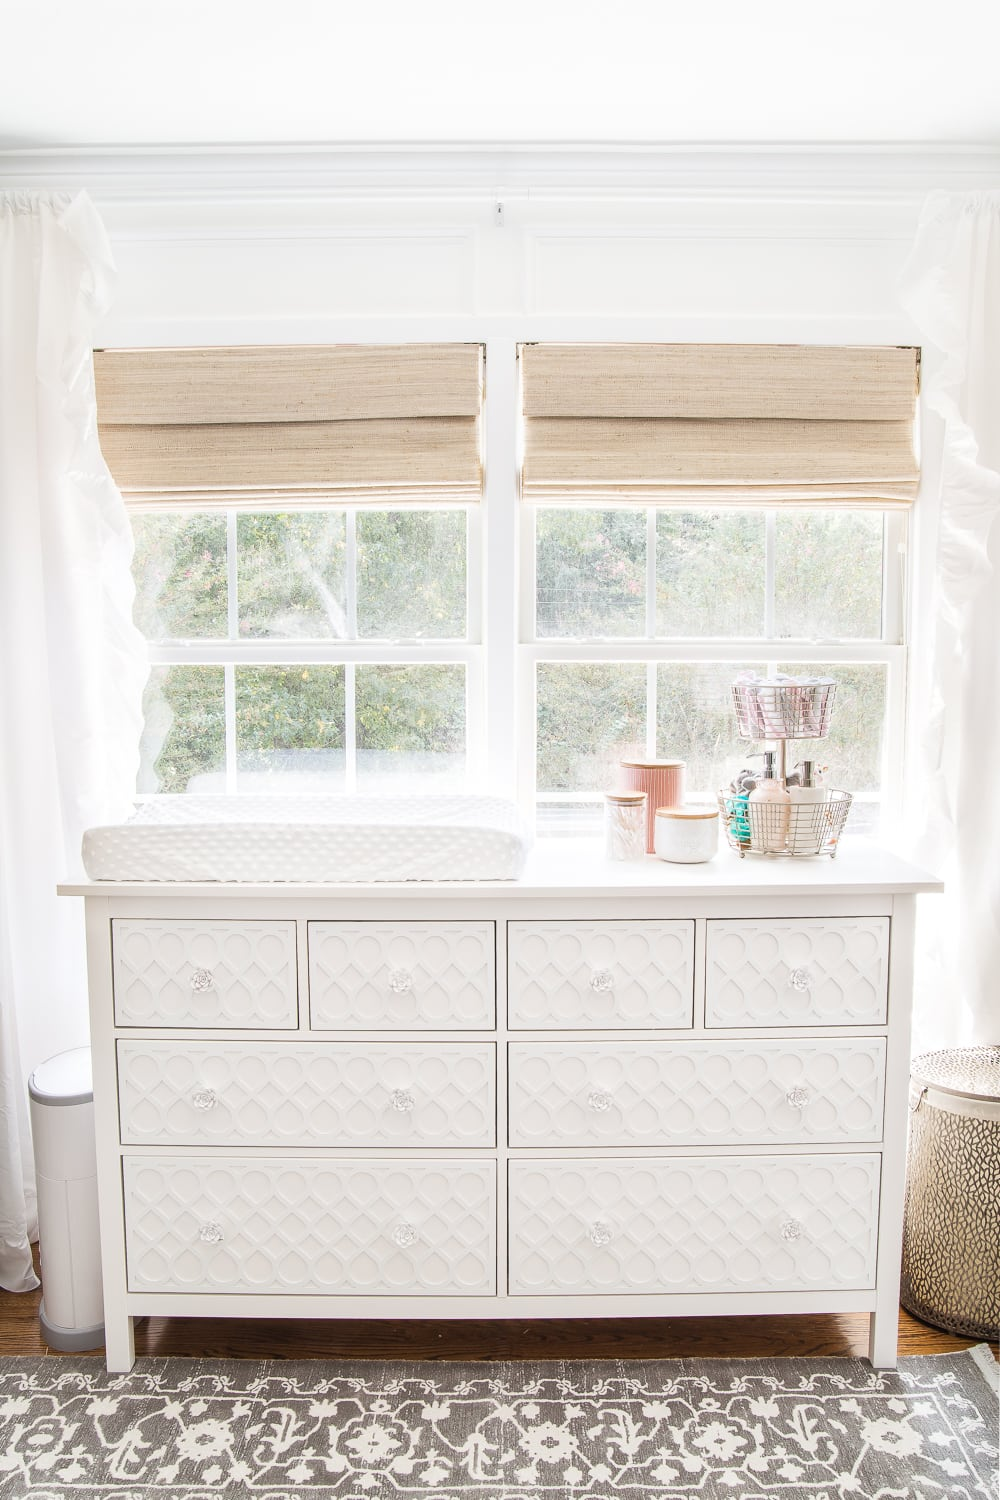 Nursery Organization | Dresser drawers